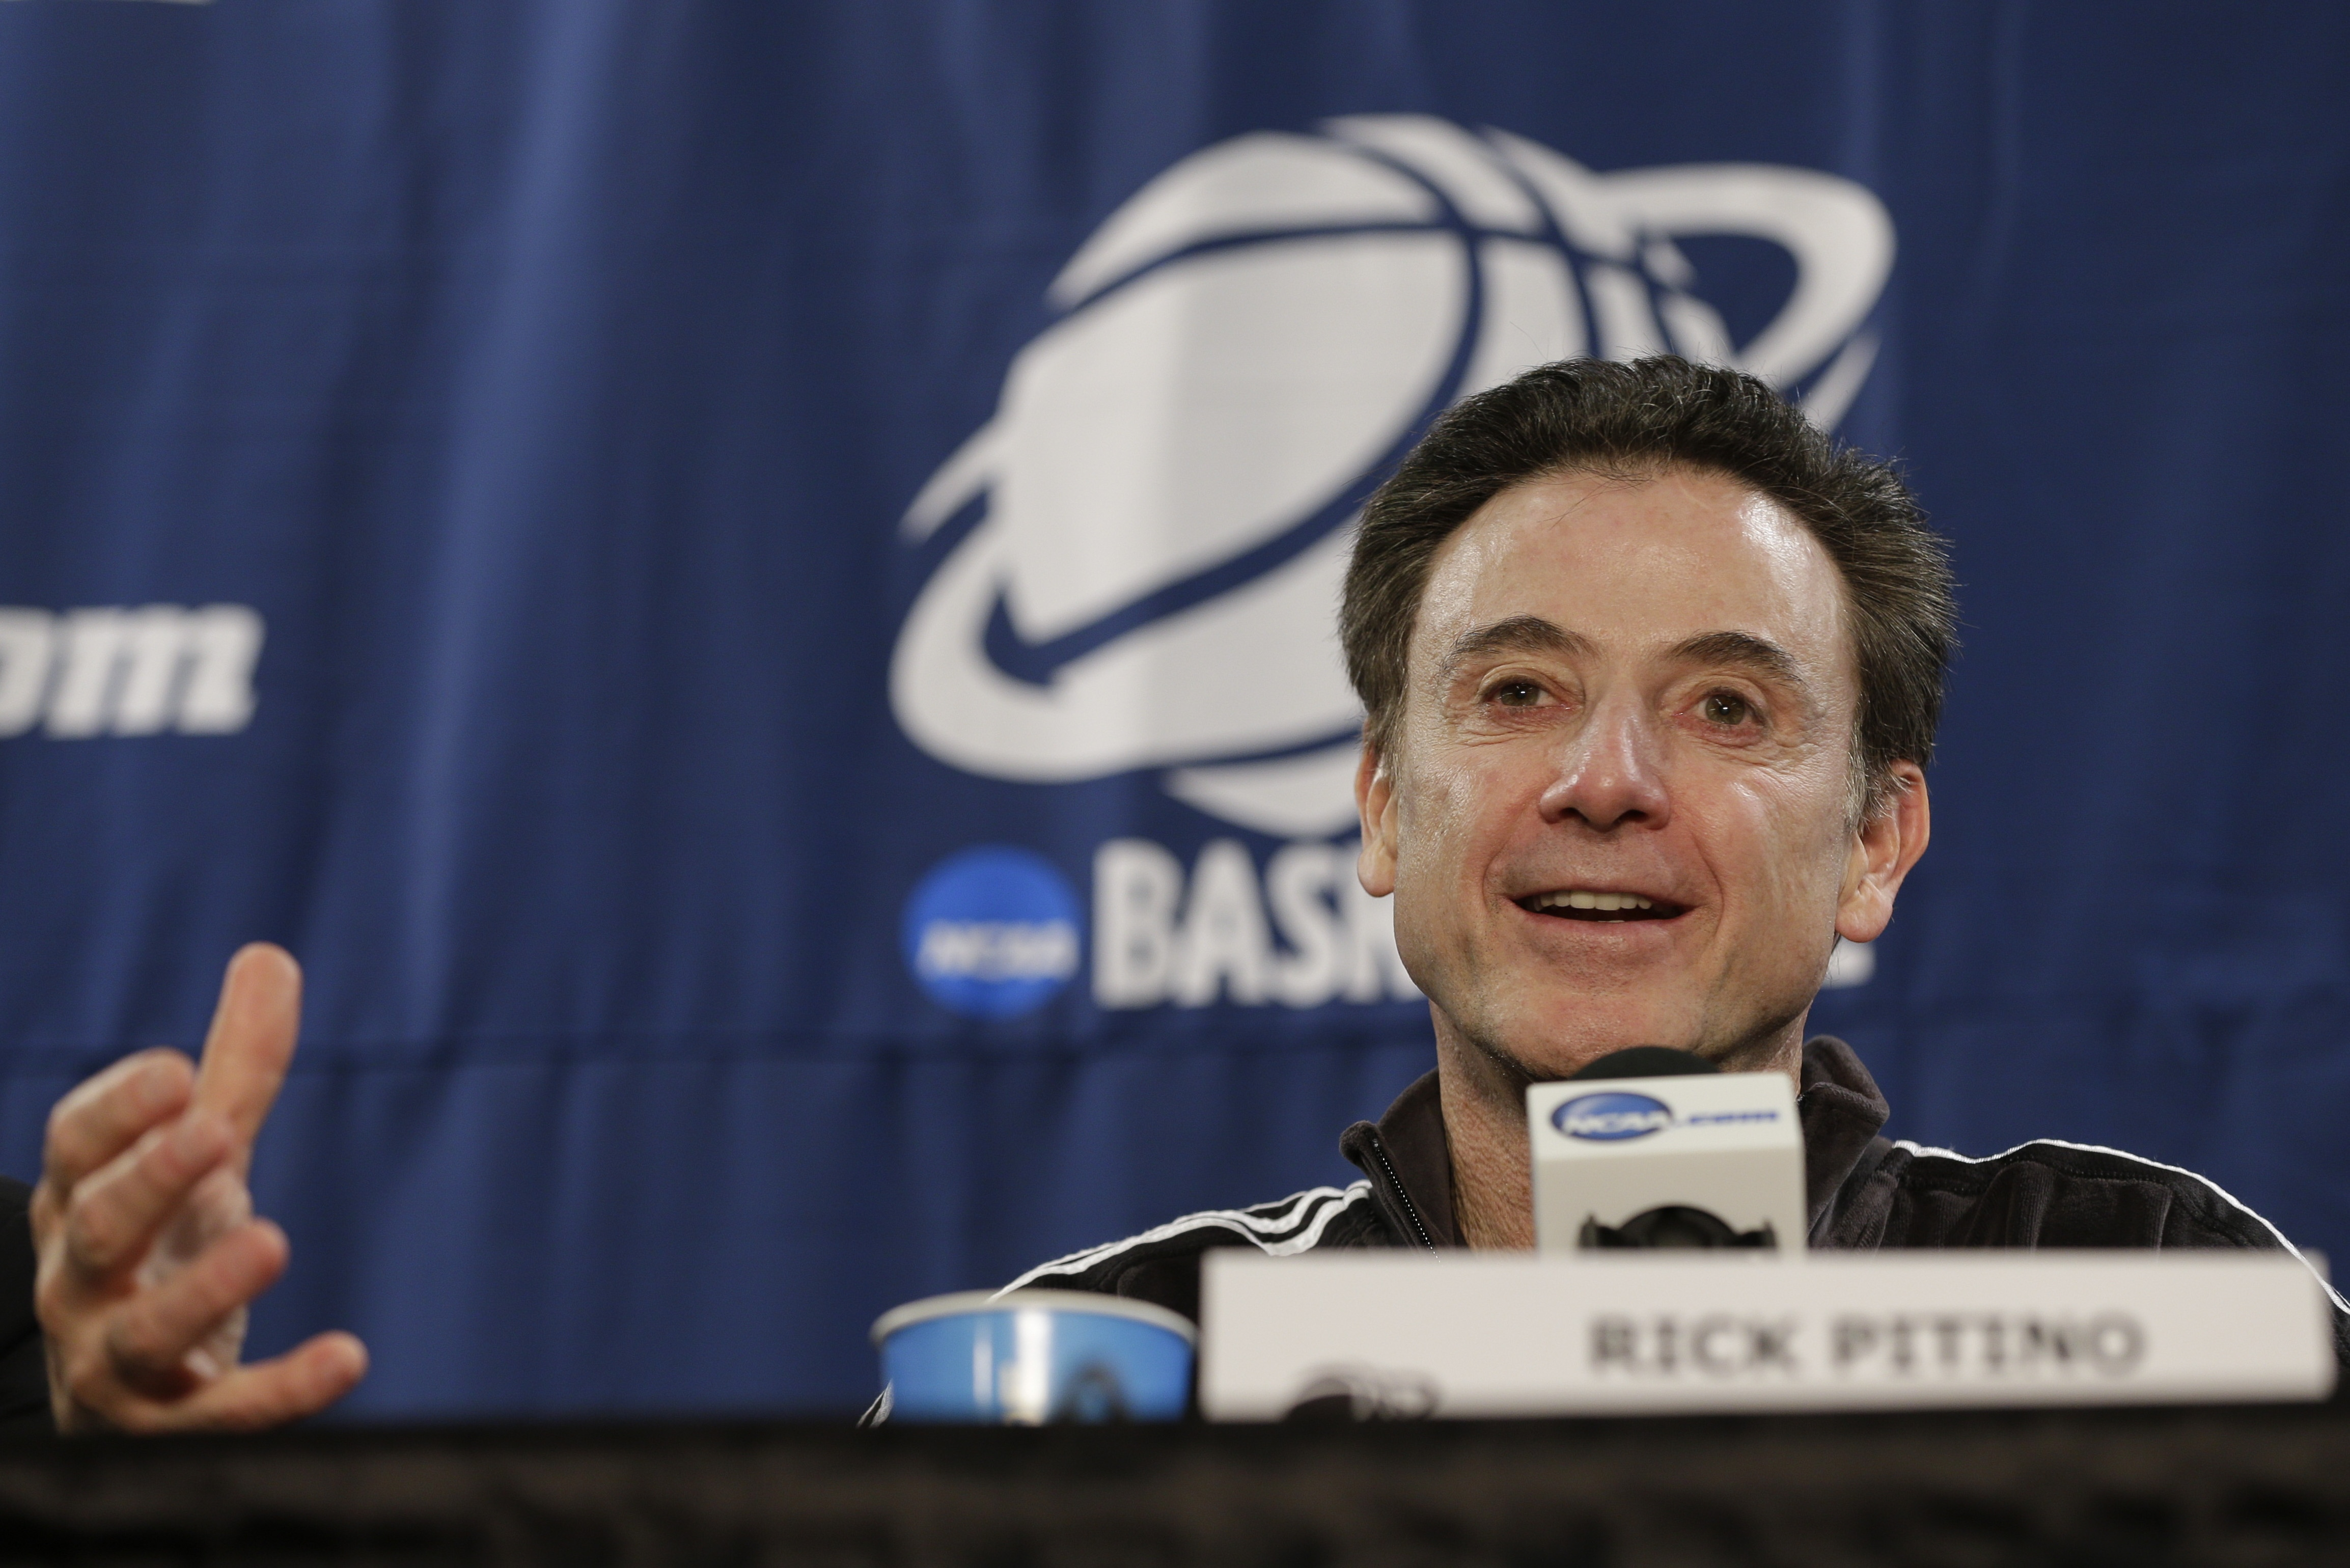 Louisville head coach Rick Pitino speaks during a news conference at the NCAA college basketball tournament Saturday, March 28, 2015, in Syracuse, N.Y. Louisville plays Michigan State in a regional final on Sunday. (AP Photo/Frank Franklin II)